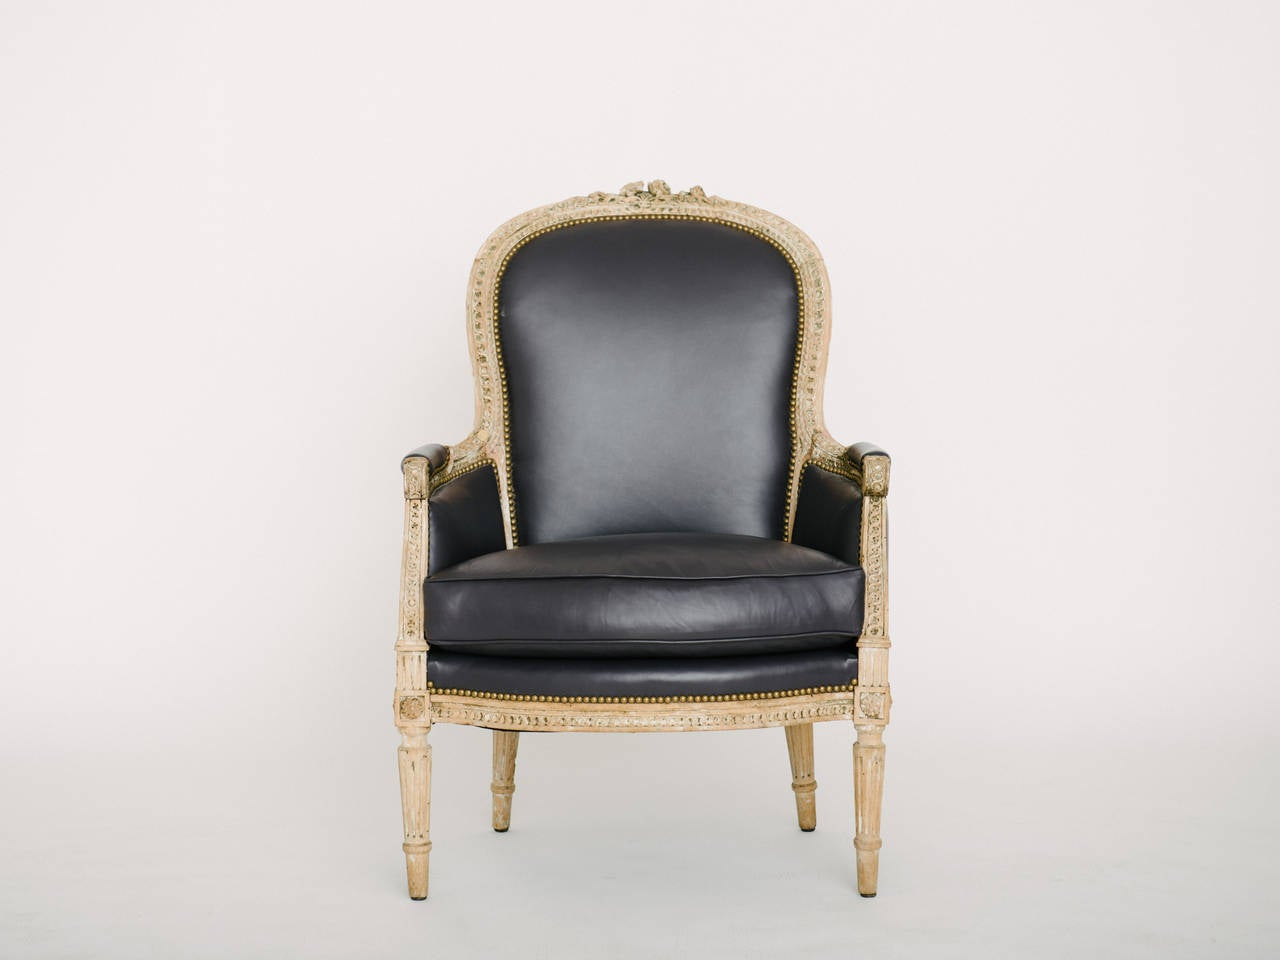 Lambskin Pair of 19th Century French Louis XVI Style Bergere Chairs